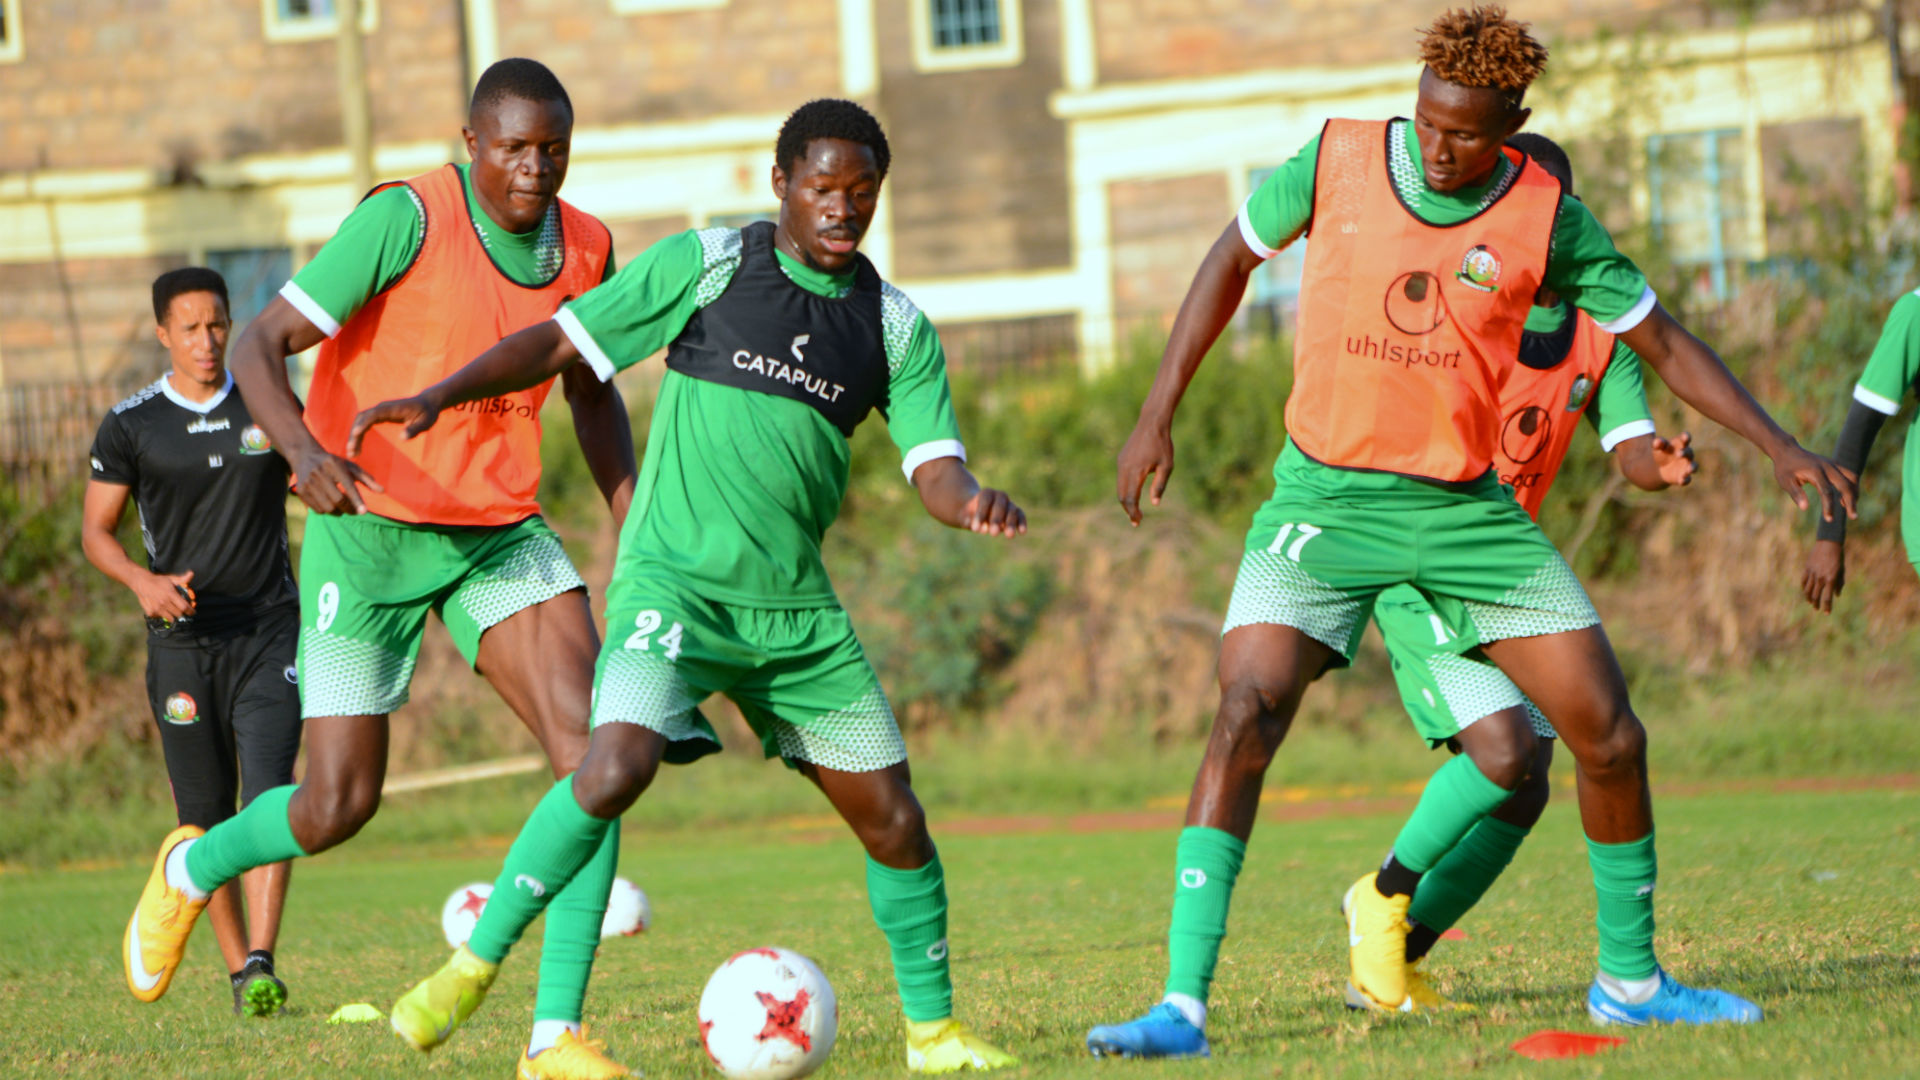 Macharia: Harambee Star confident friendlies against South Sudan & Tanzania will improve players